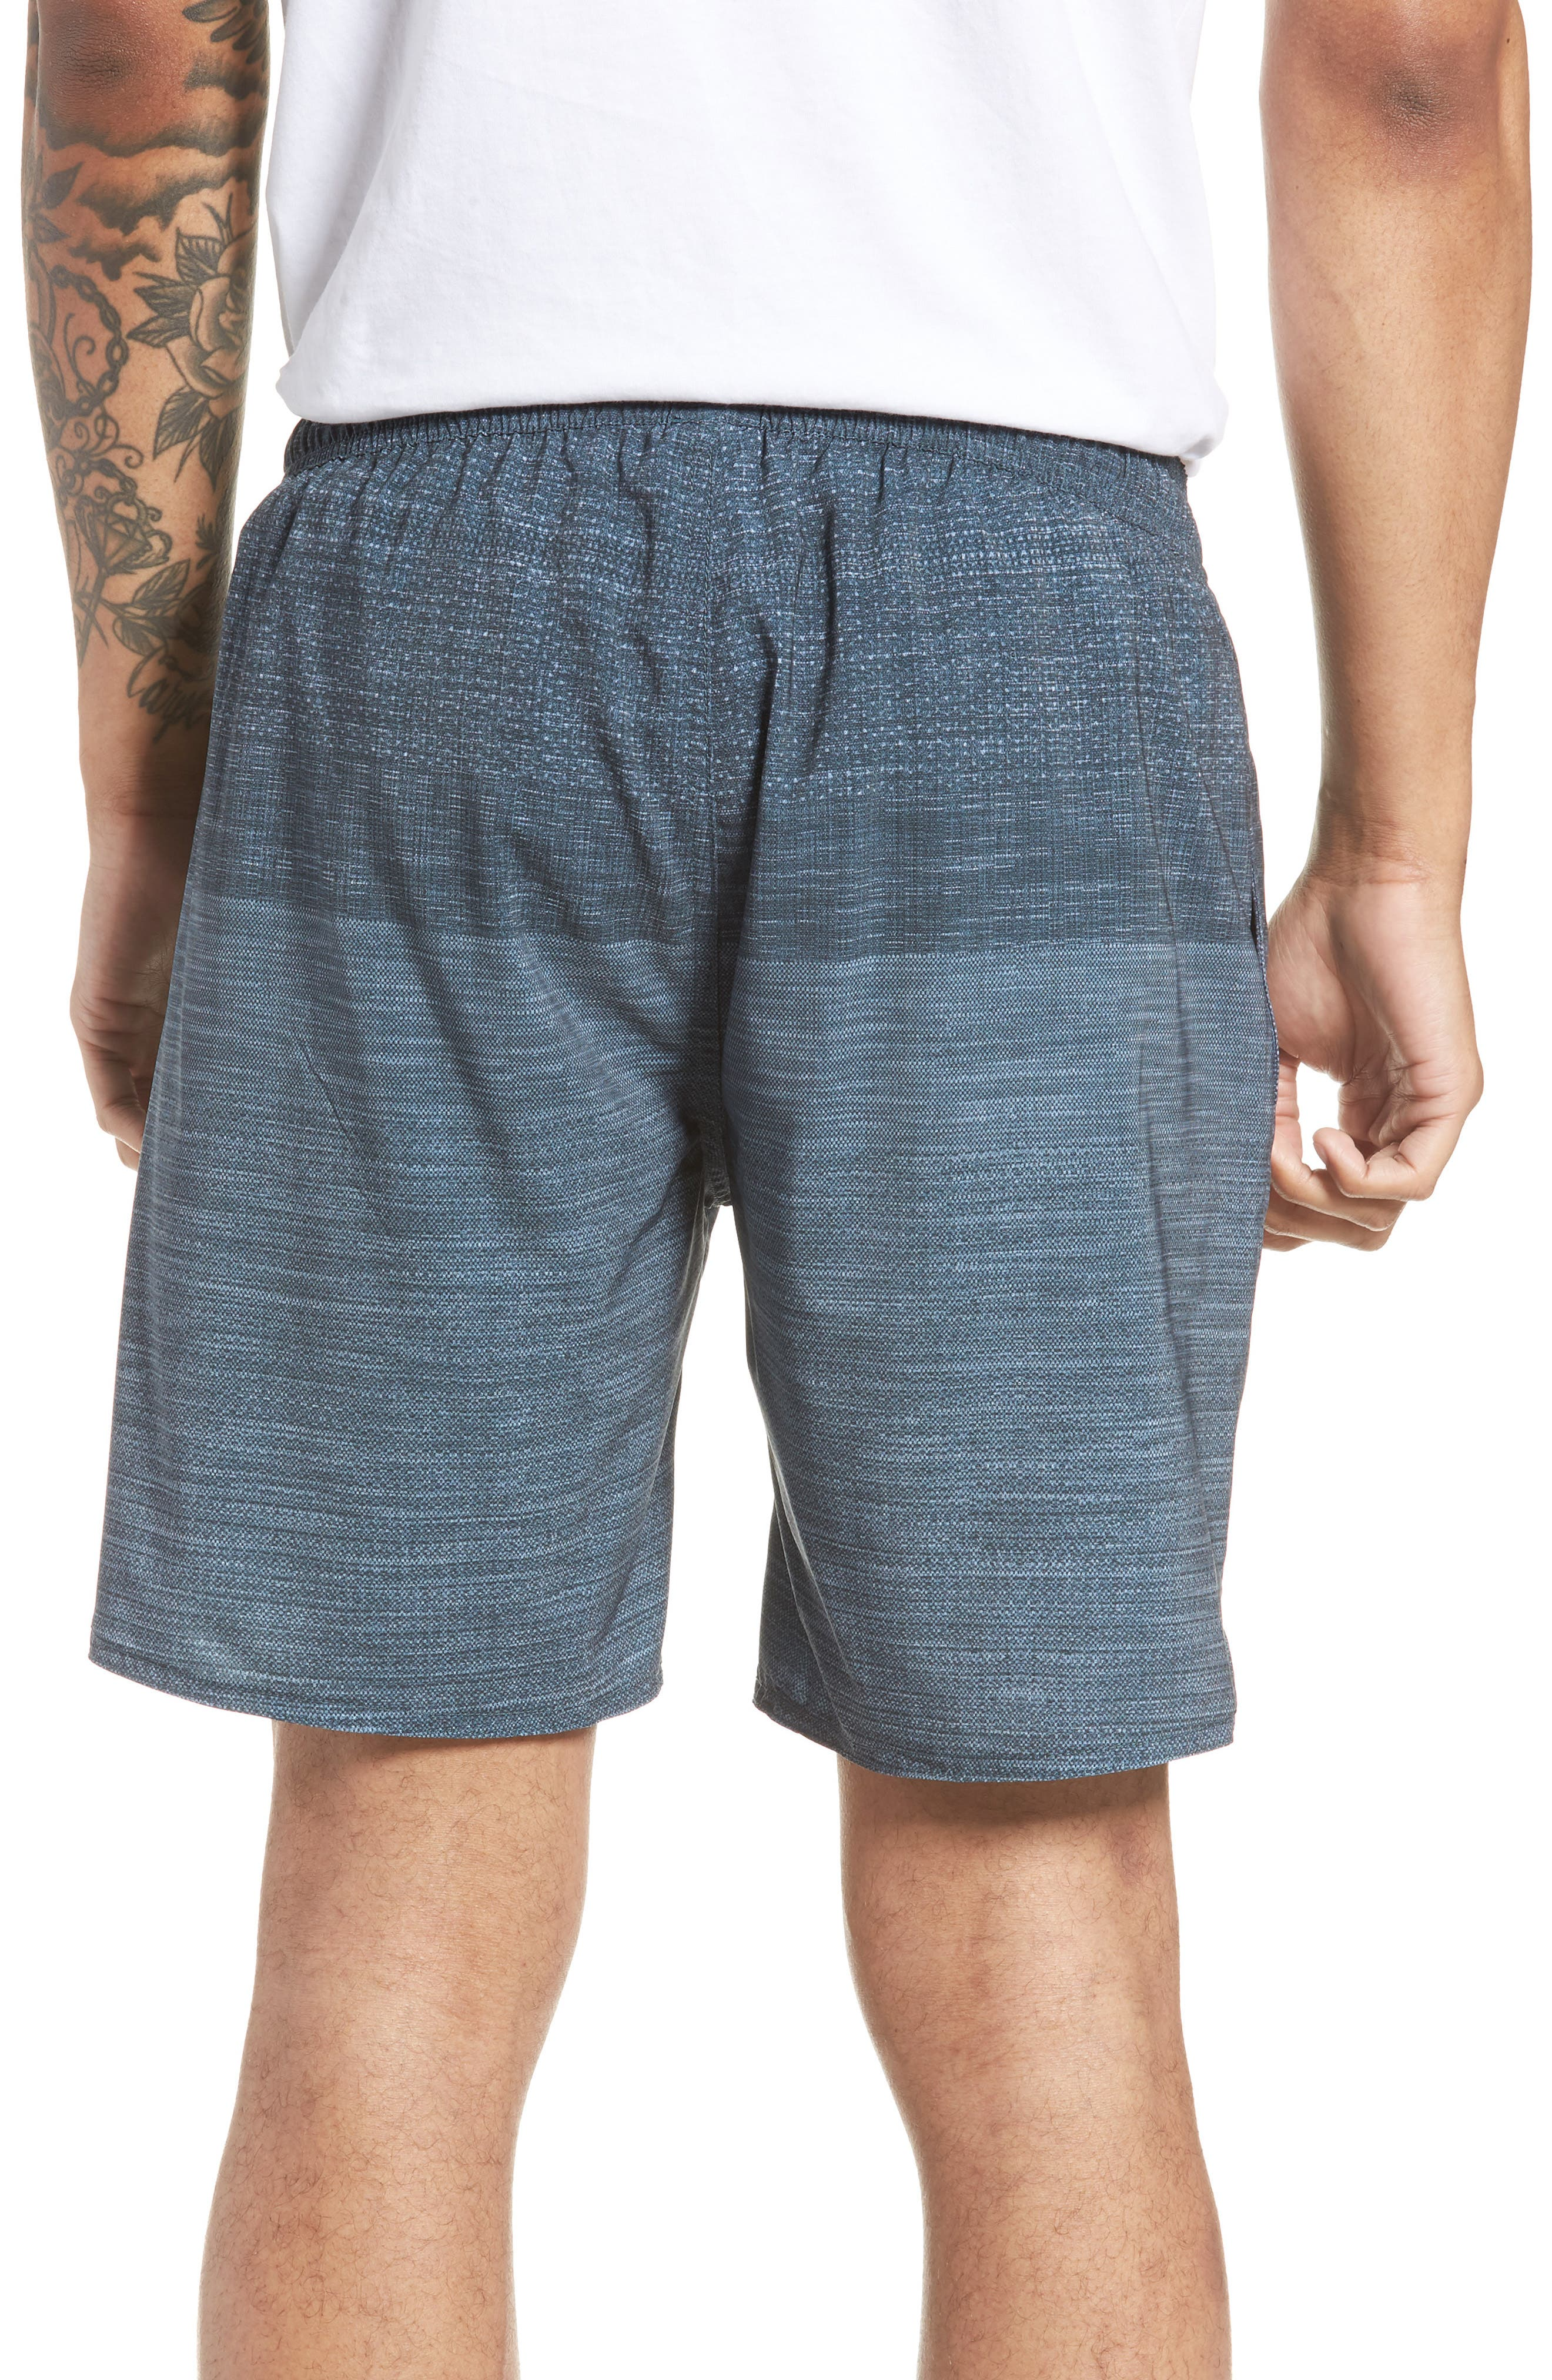 Tempo Performance Shorts,                             Alternate thumbnail 2, color,                             HEATHER QUIET SHADE